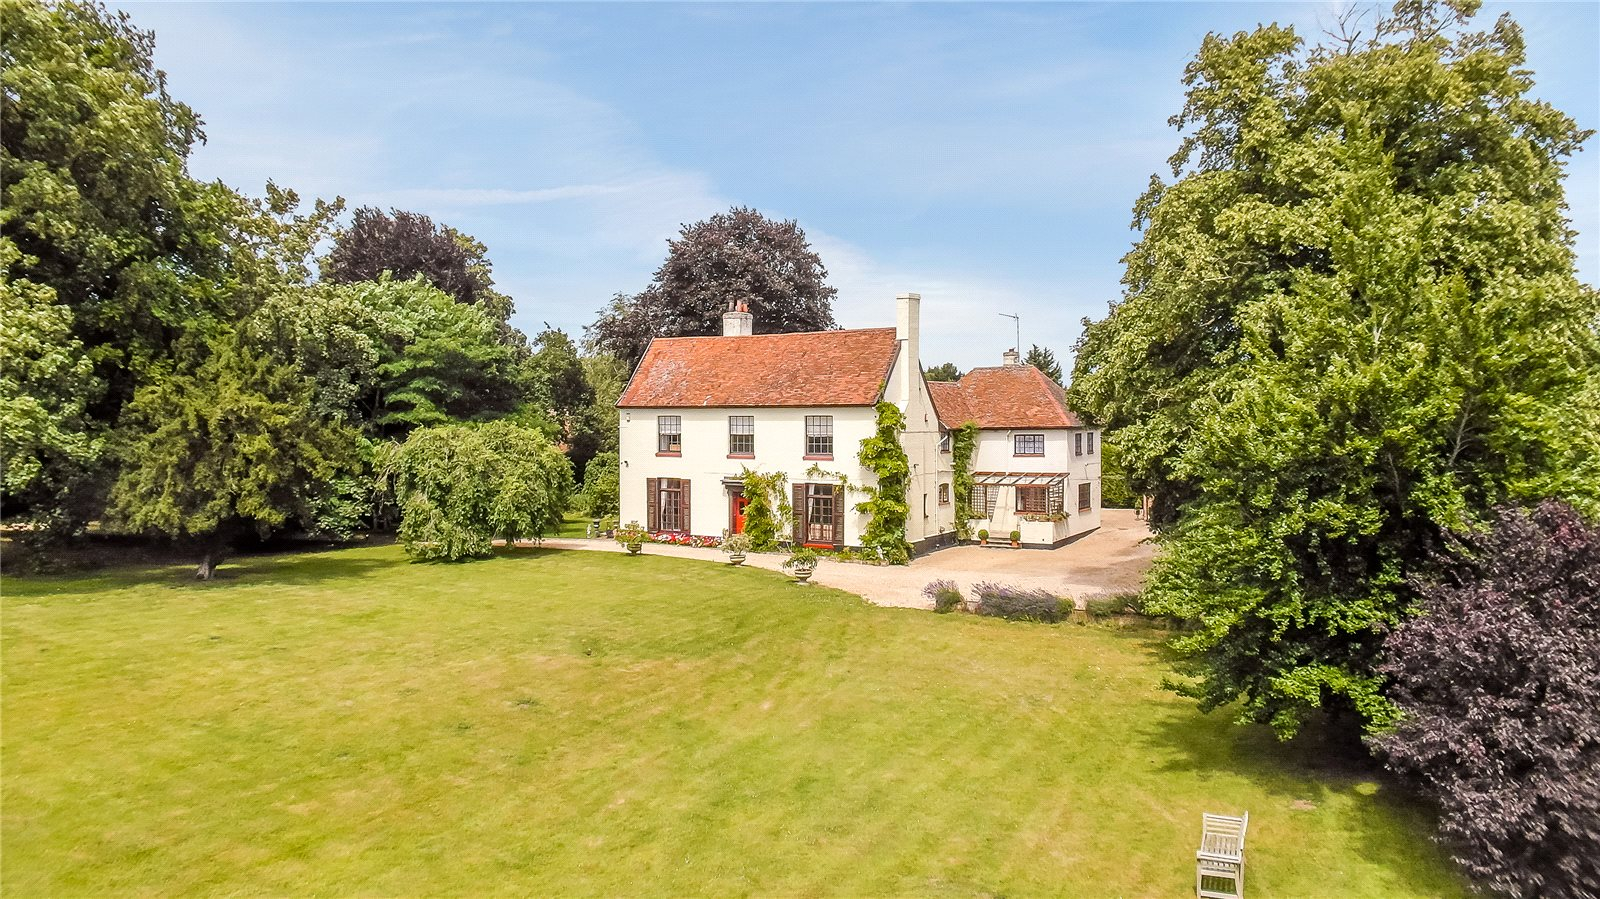 Single Family Home for Sale at Bramford Road, Little Blakenham, Ipswich, Suffolk, IP8 Ipswich, England